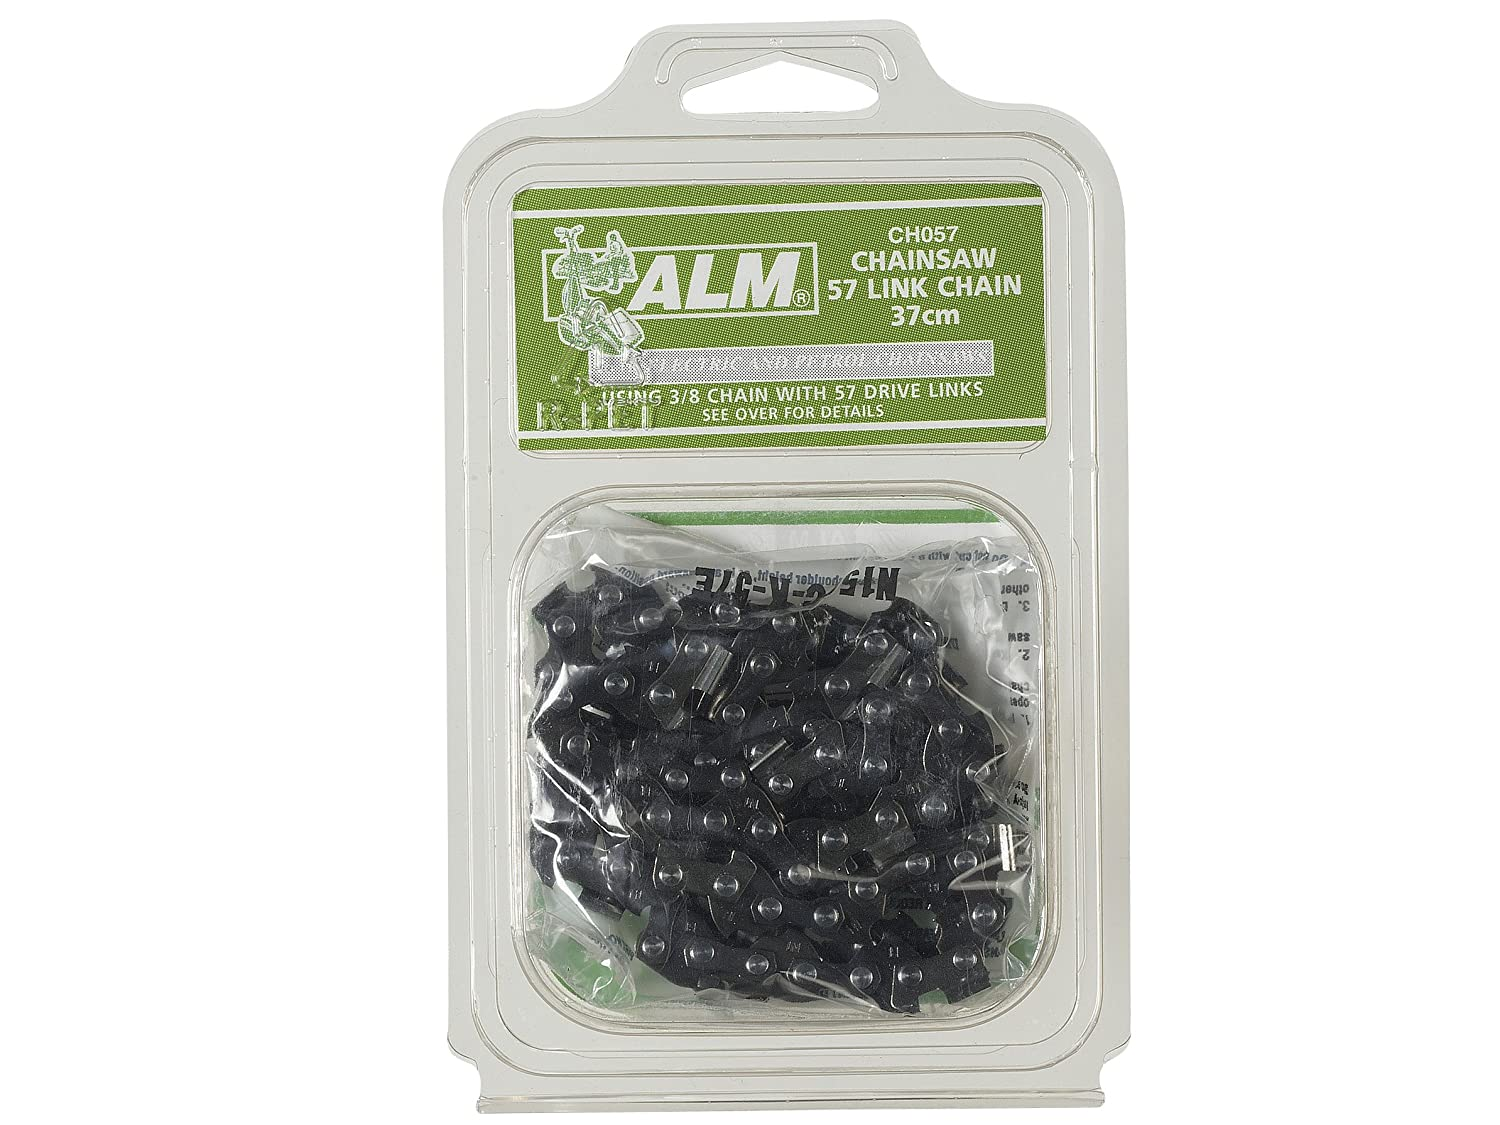 ALM Manufacturing CH057 3//8-inch x 57-Links Chainsaw Chain Fits 40cm Bars